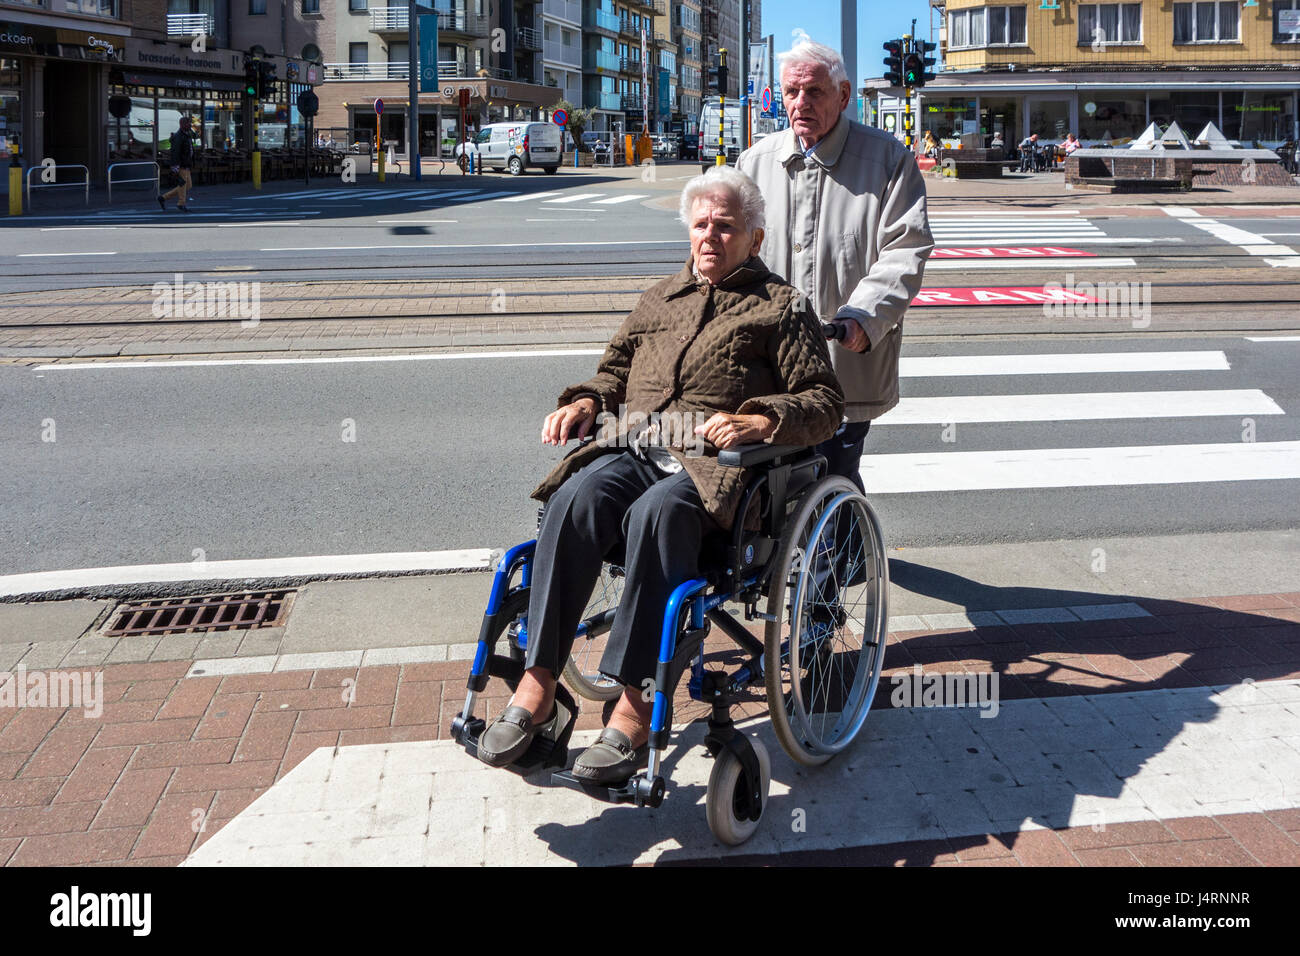 Retired husband with disabled elderly wife in wheelchair traversing street over pedestrian crossing / crosswalk - Stock Image